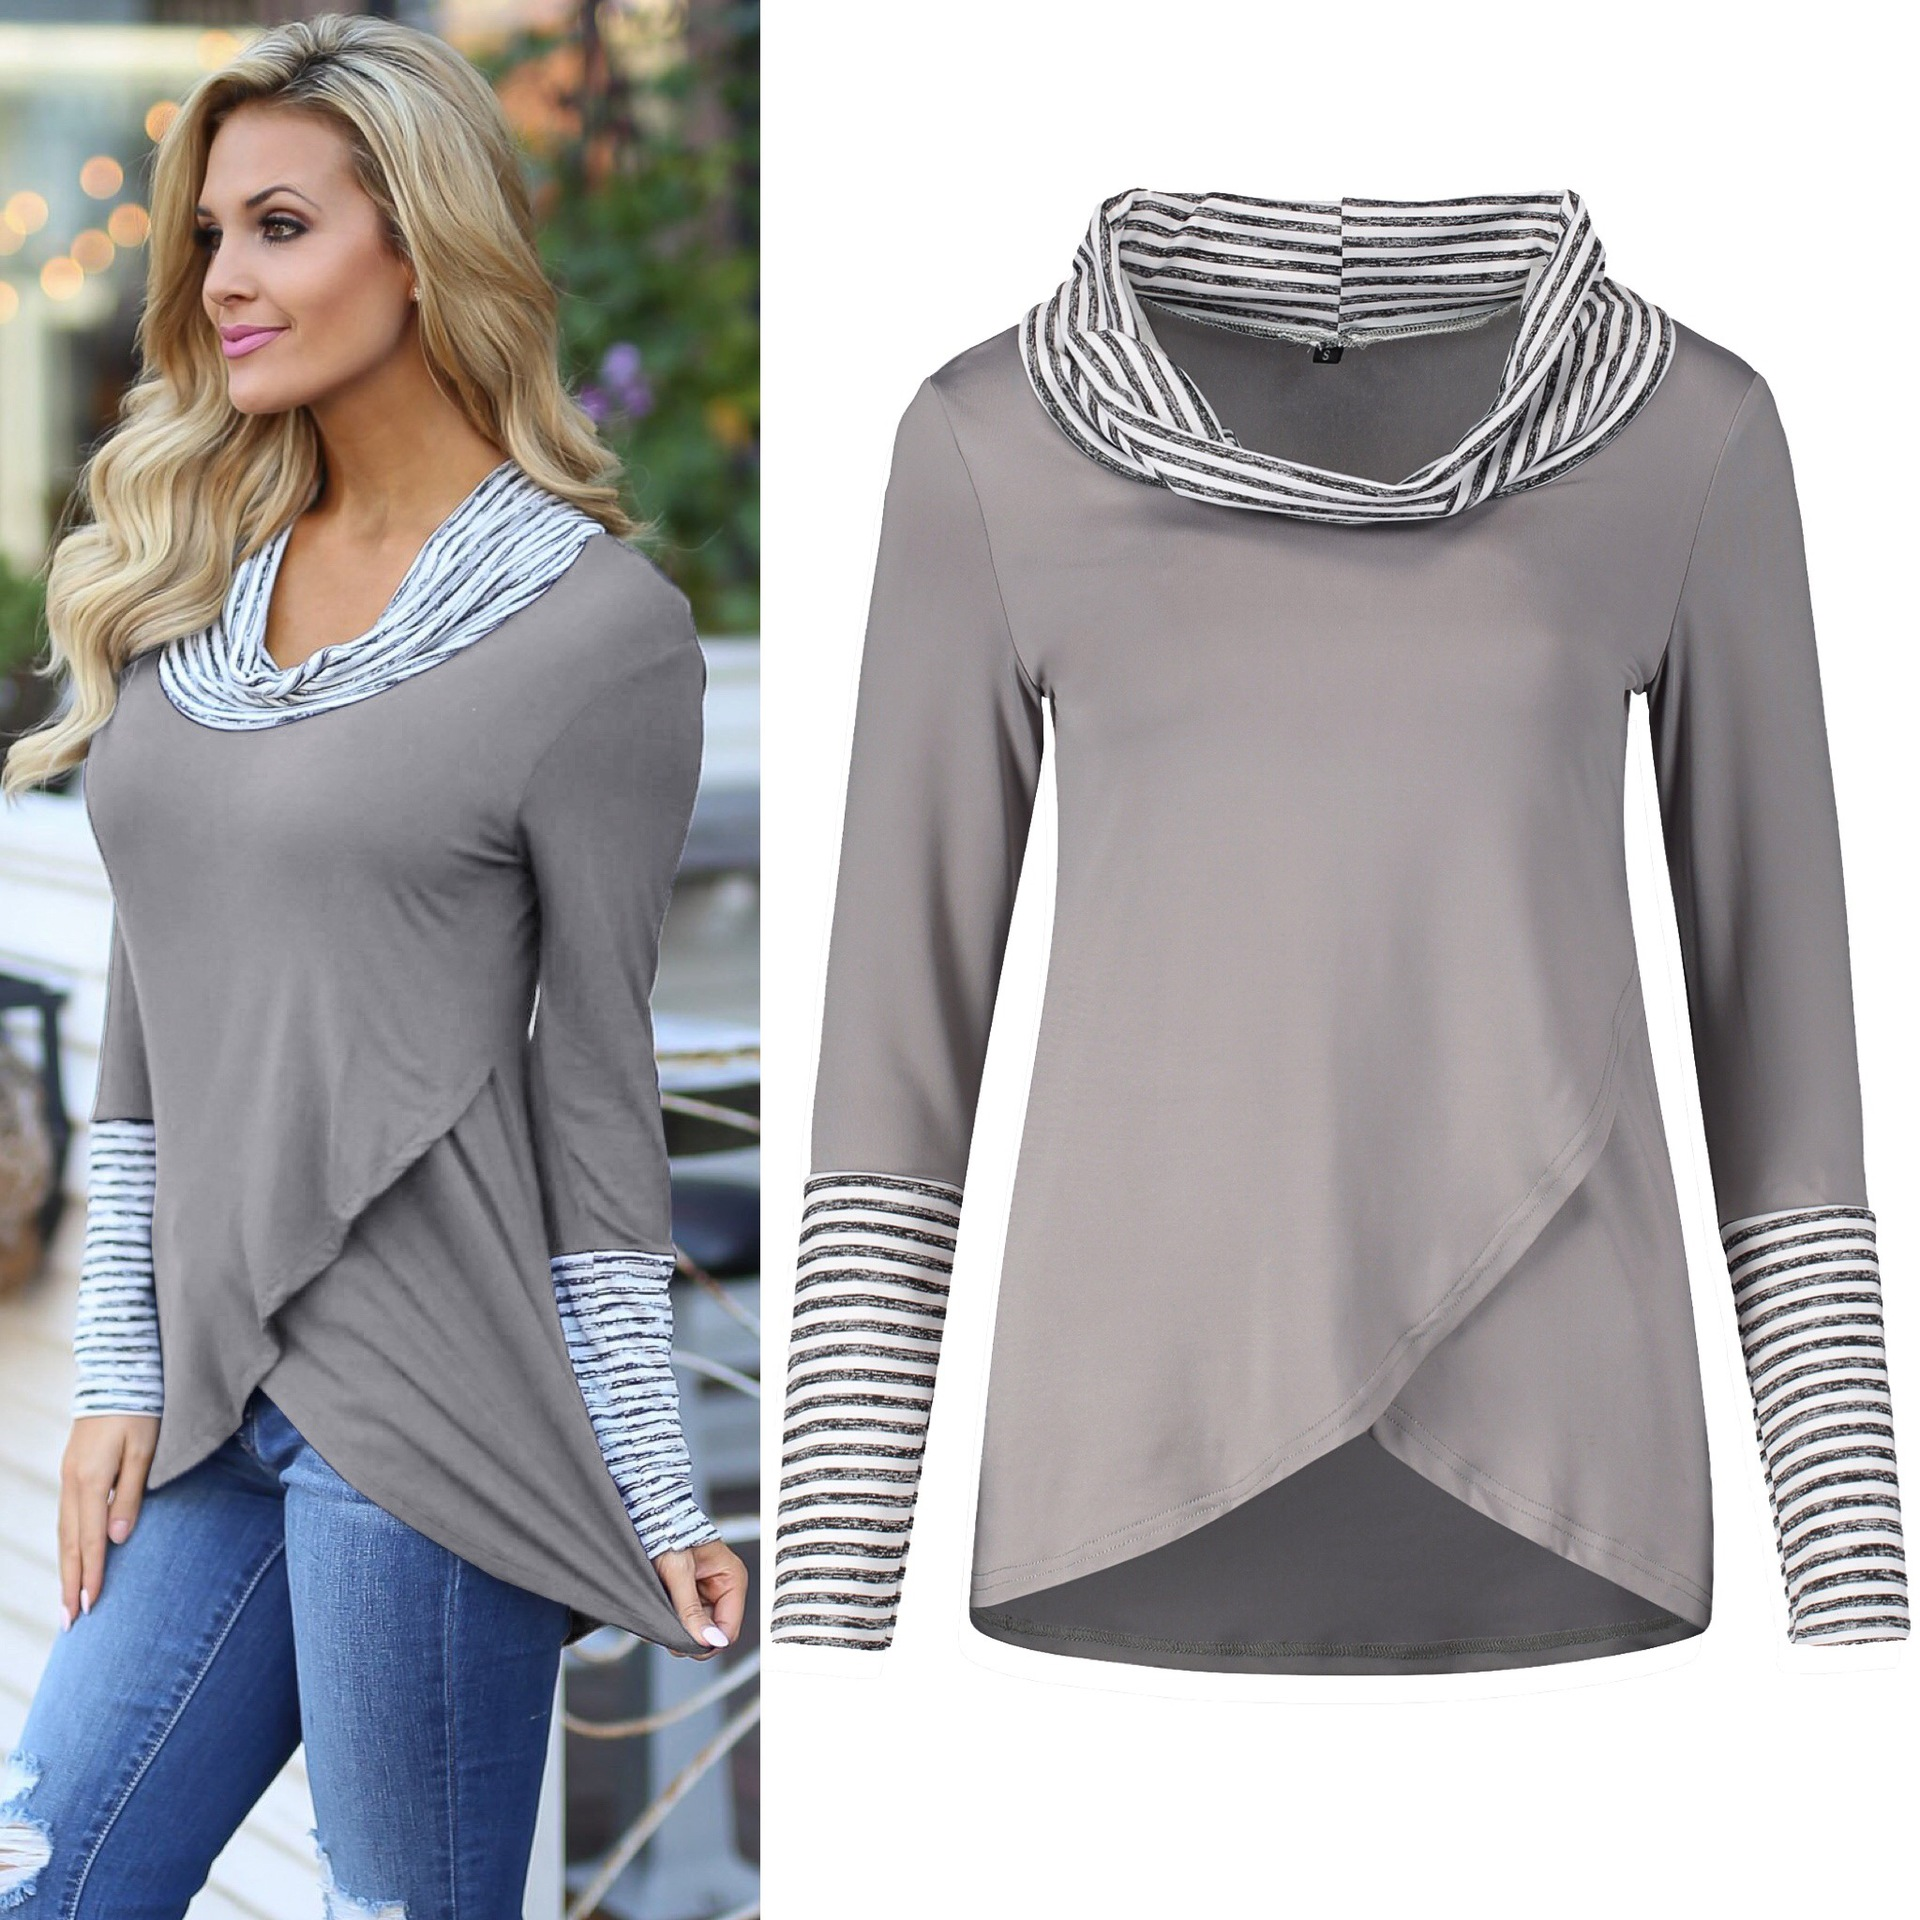 mama tee style autumn tops turleneck woman bottom T slim 2019 female long sleeve striped female T plus size women gothic in T Shirts from Women 39 s Clothing